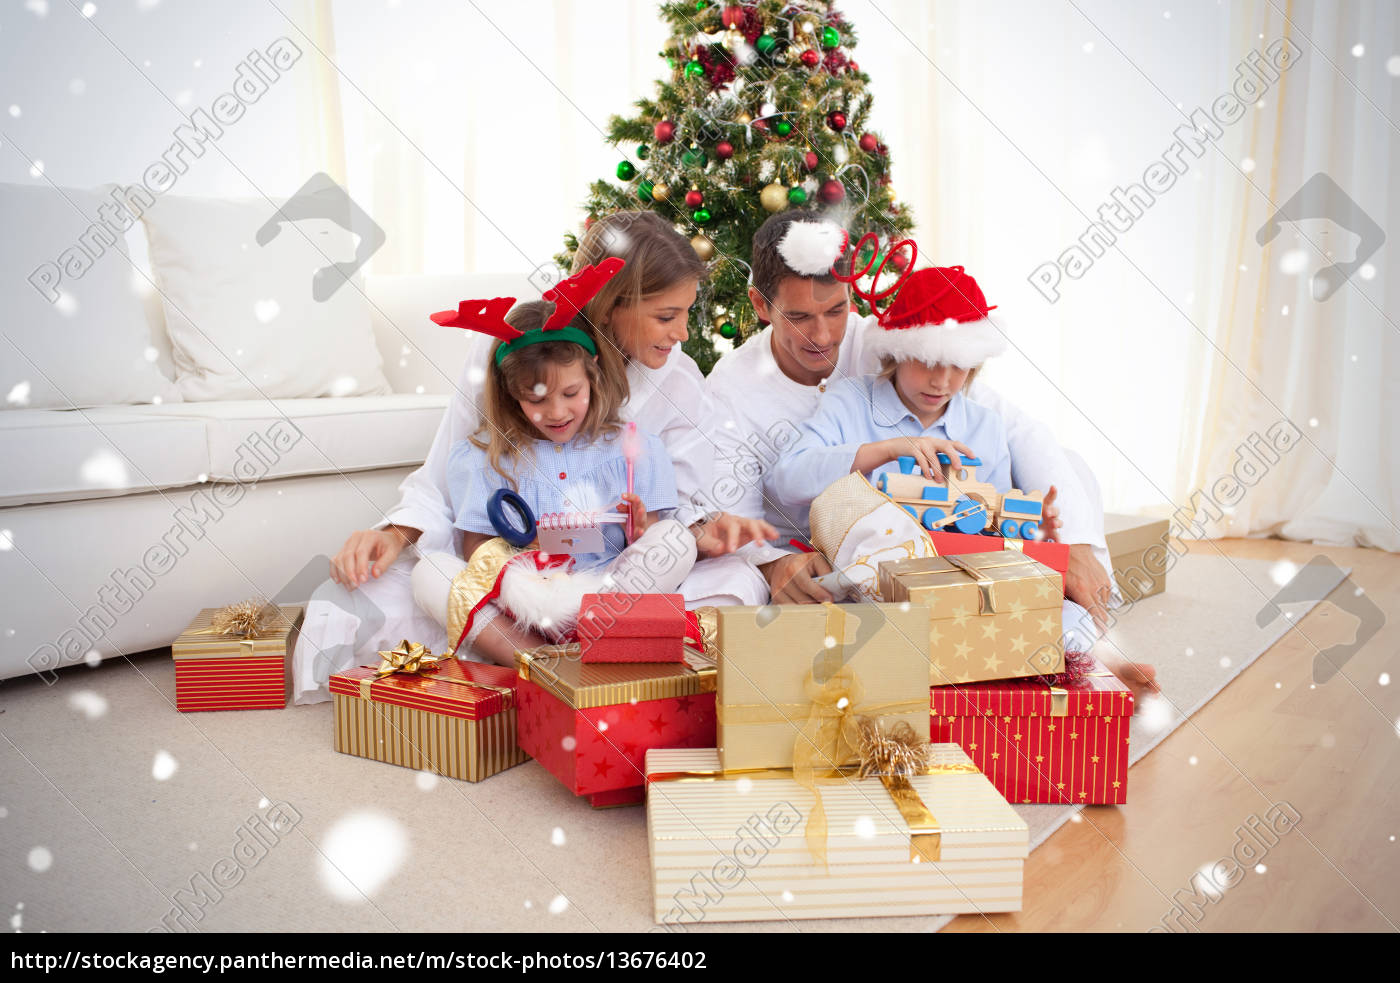 young, family, unpacking, christmas, presents - 13676402